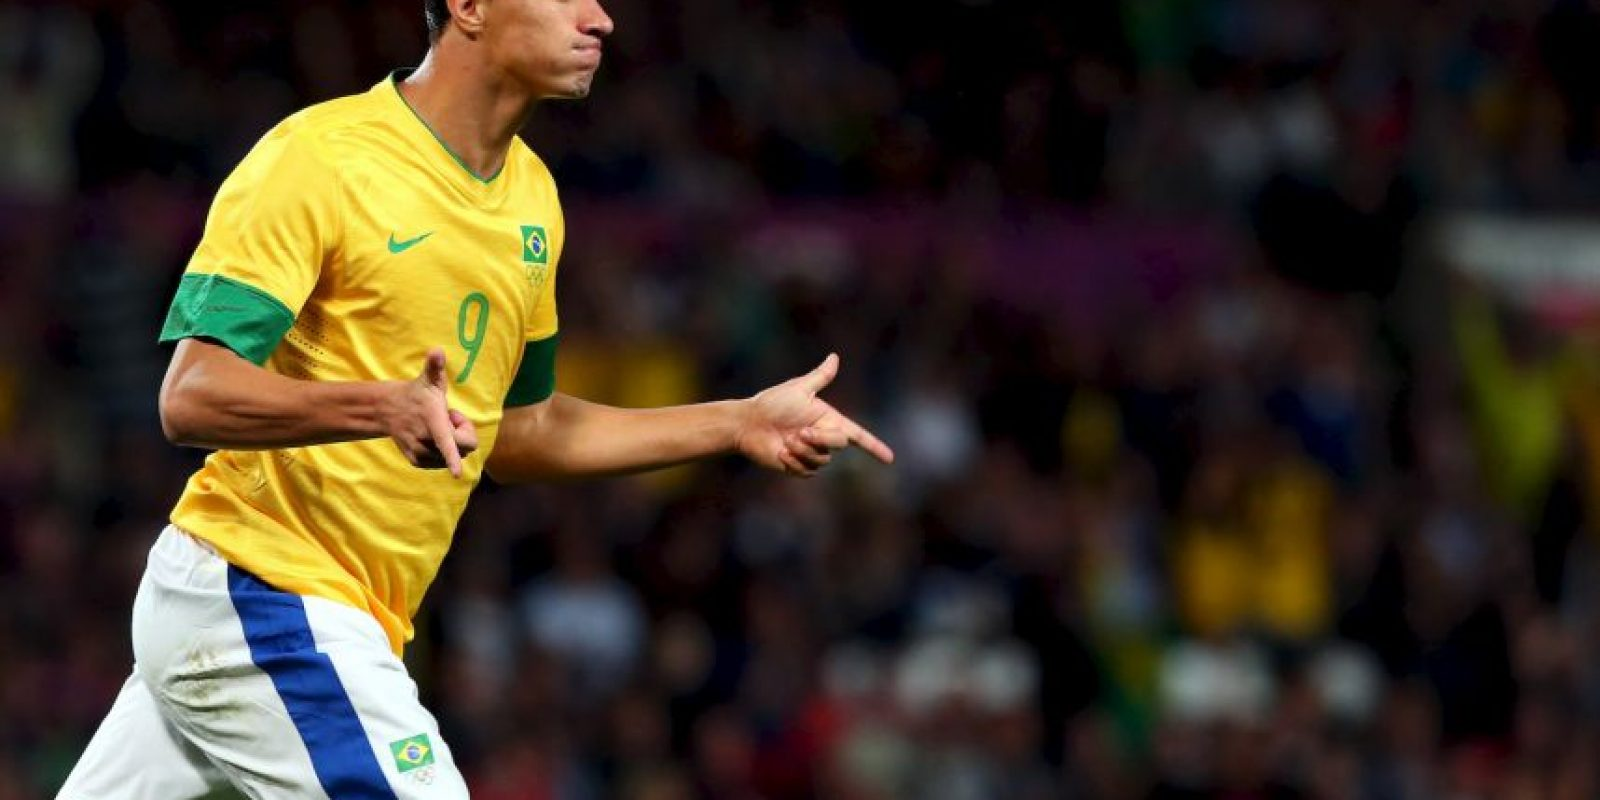 Londres 2012: Leandro Damiao (Brasil) – 6 goles Foto:Getty Images